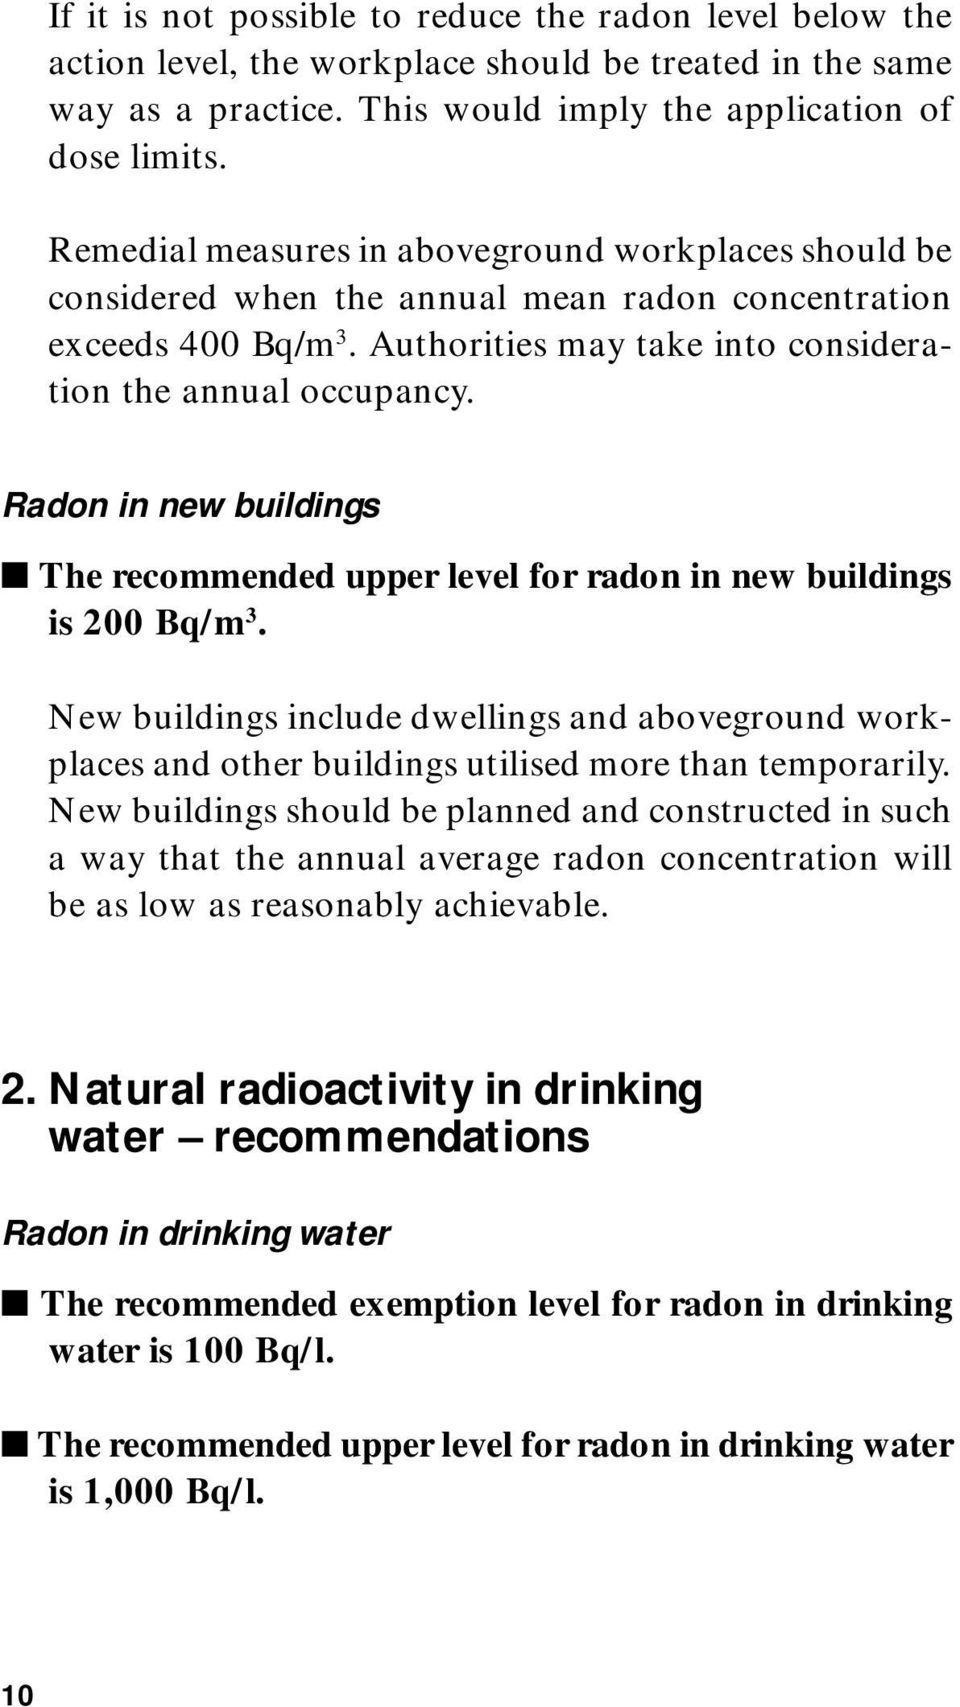 Radon in new buildings The recommended upper level for radon in new buildings is 200 Bq/m 3.